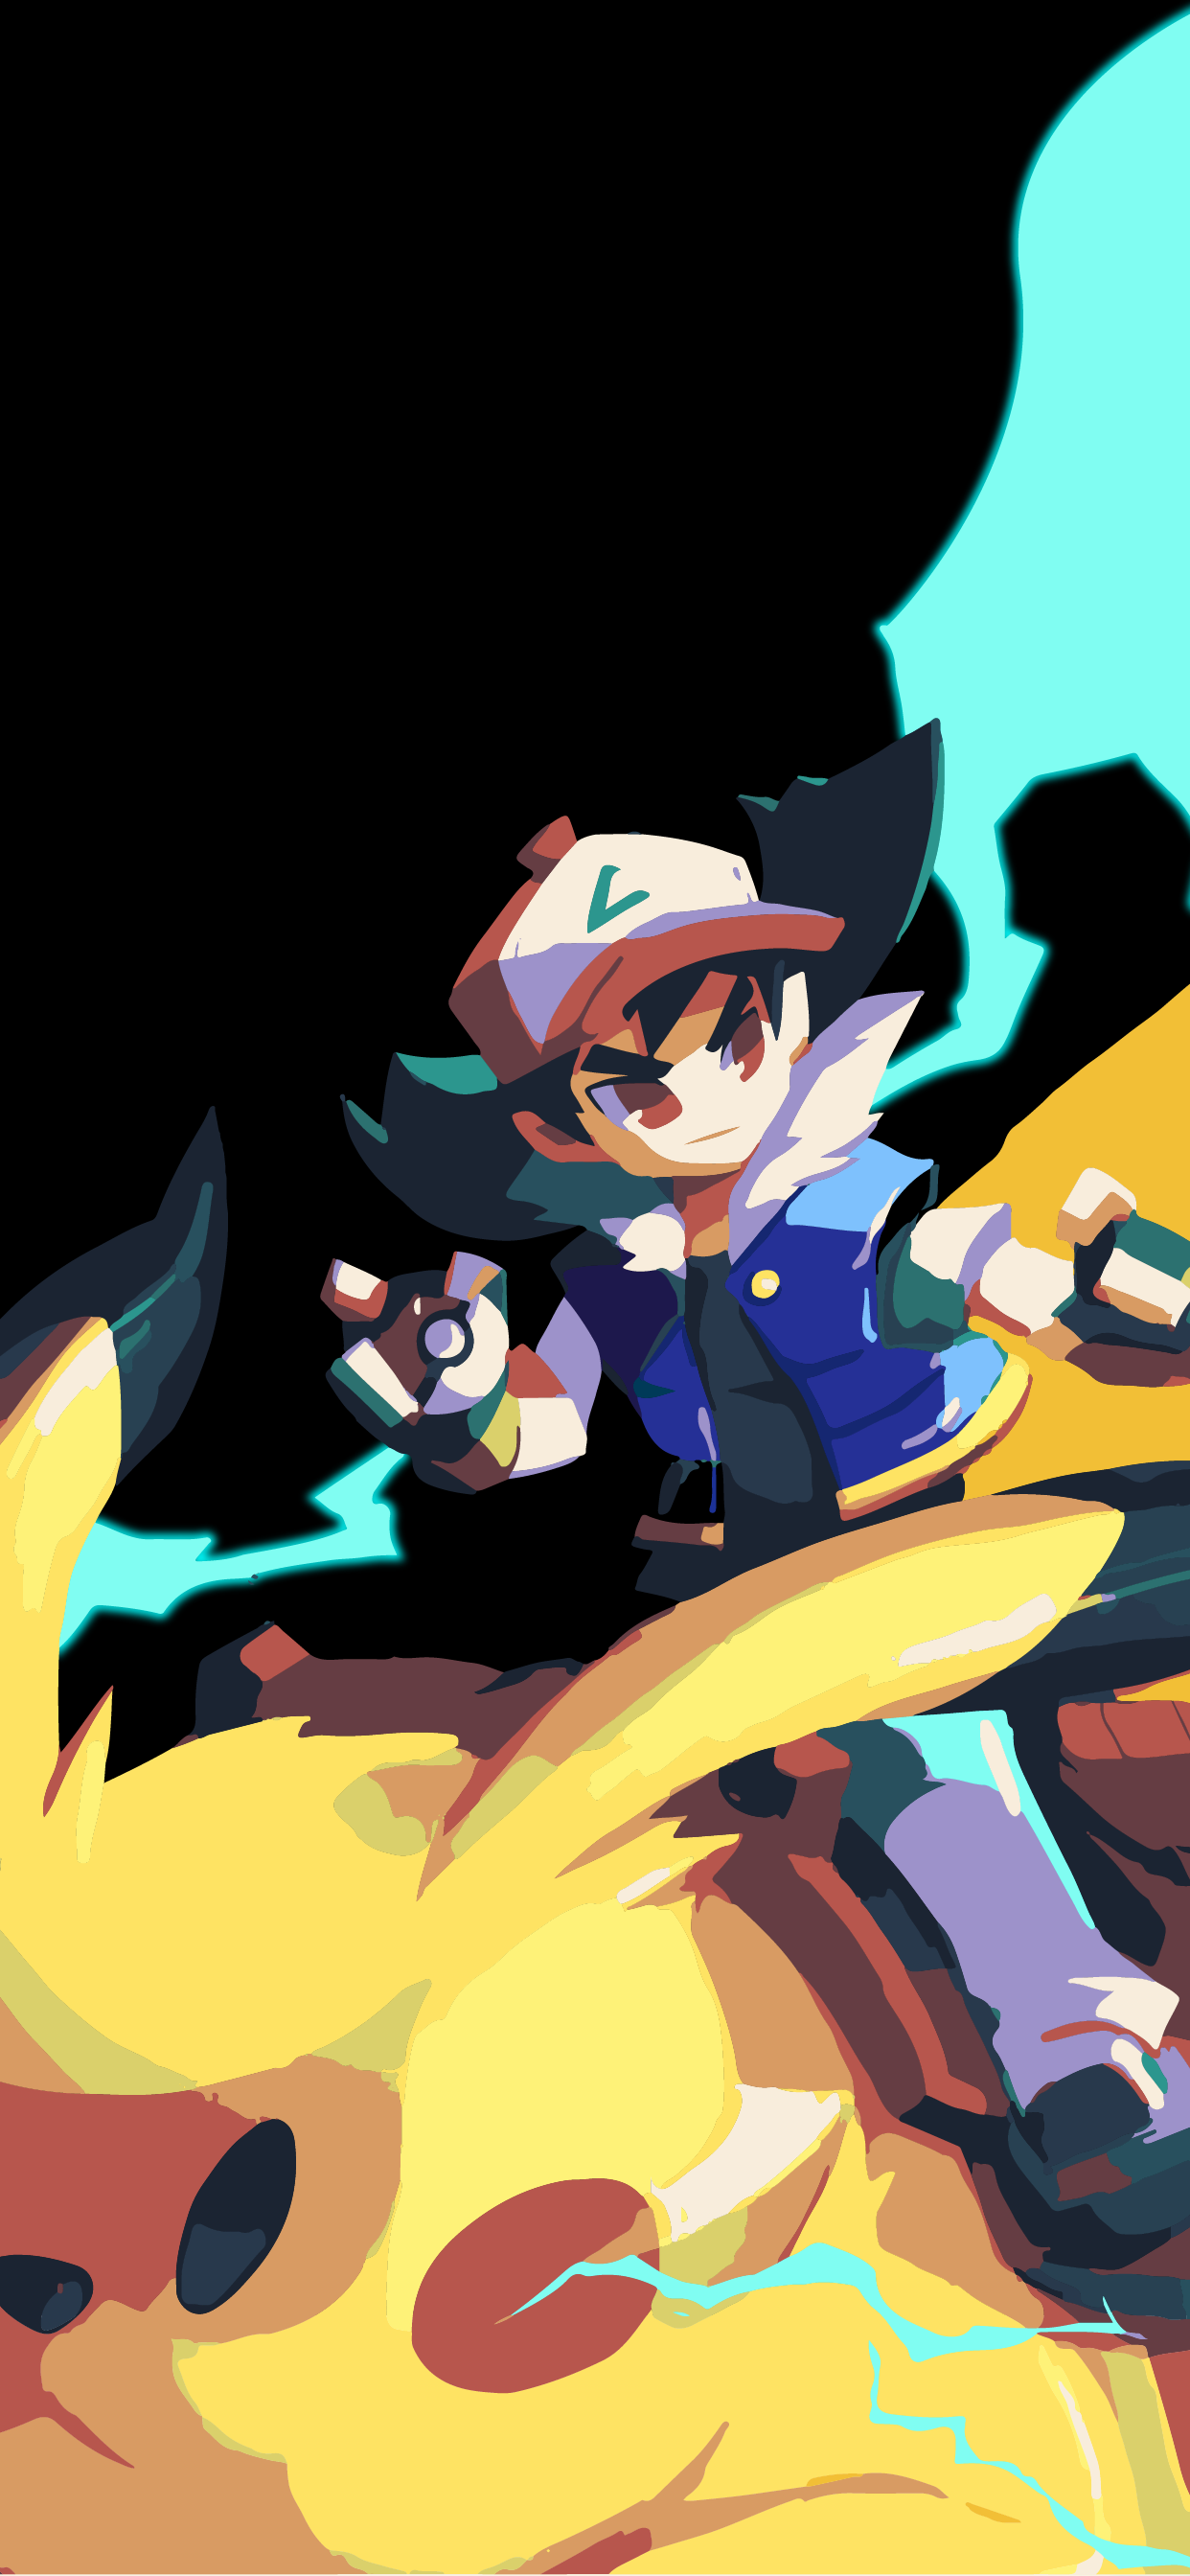 Ash and pikachu art wallpaper background for phone hd